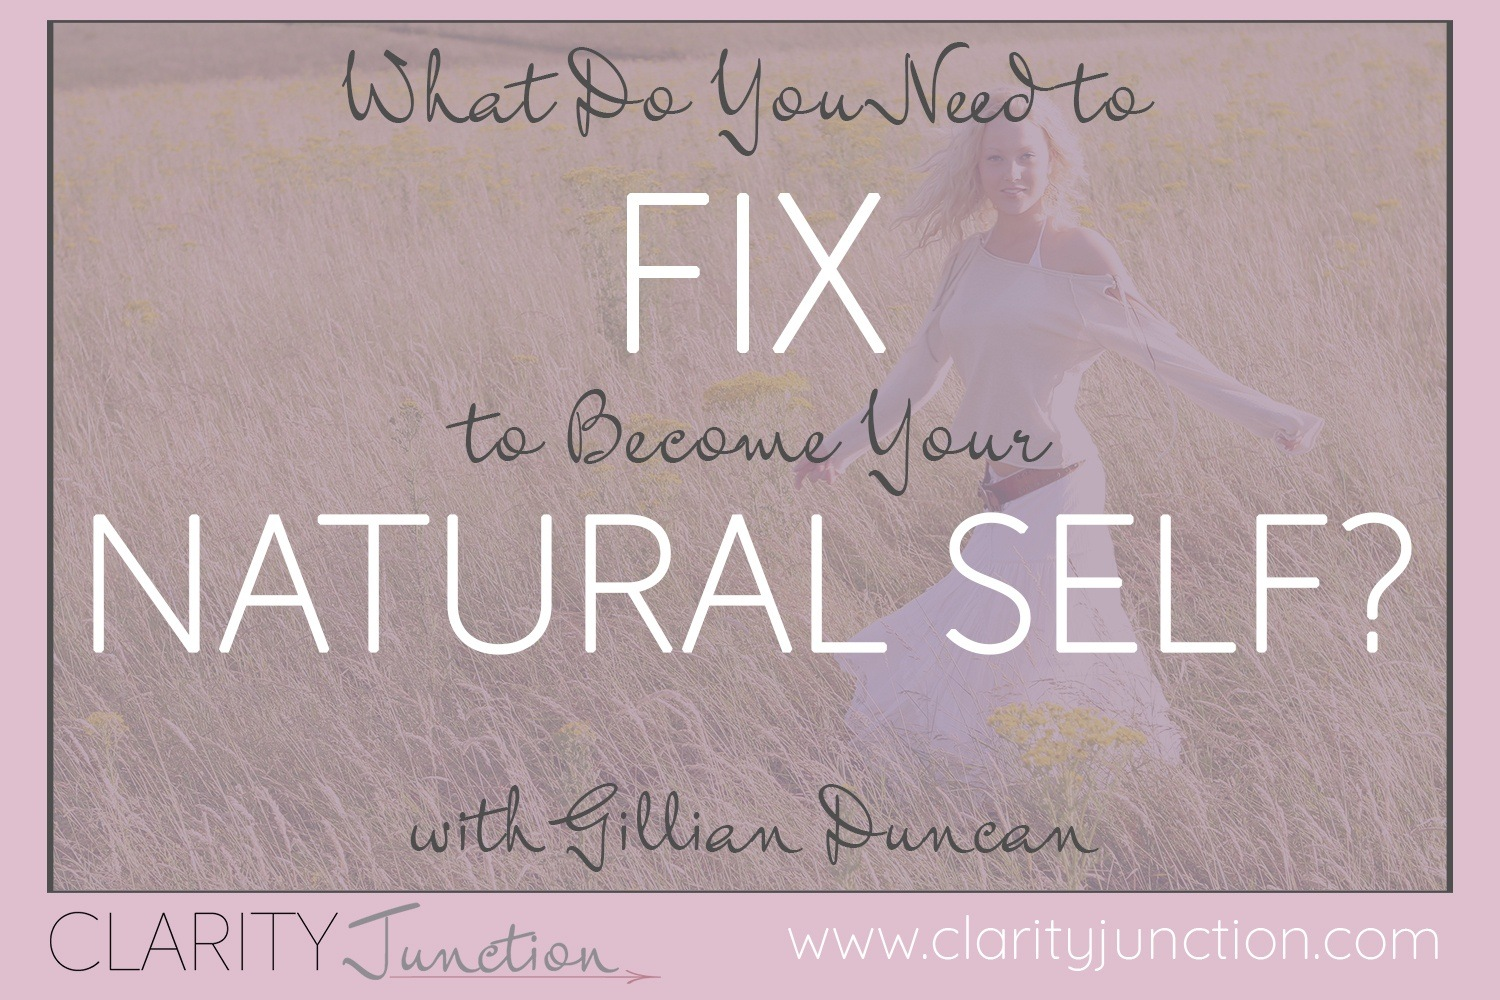 What Do You Need to Fix to Become Your Natural Self